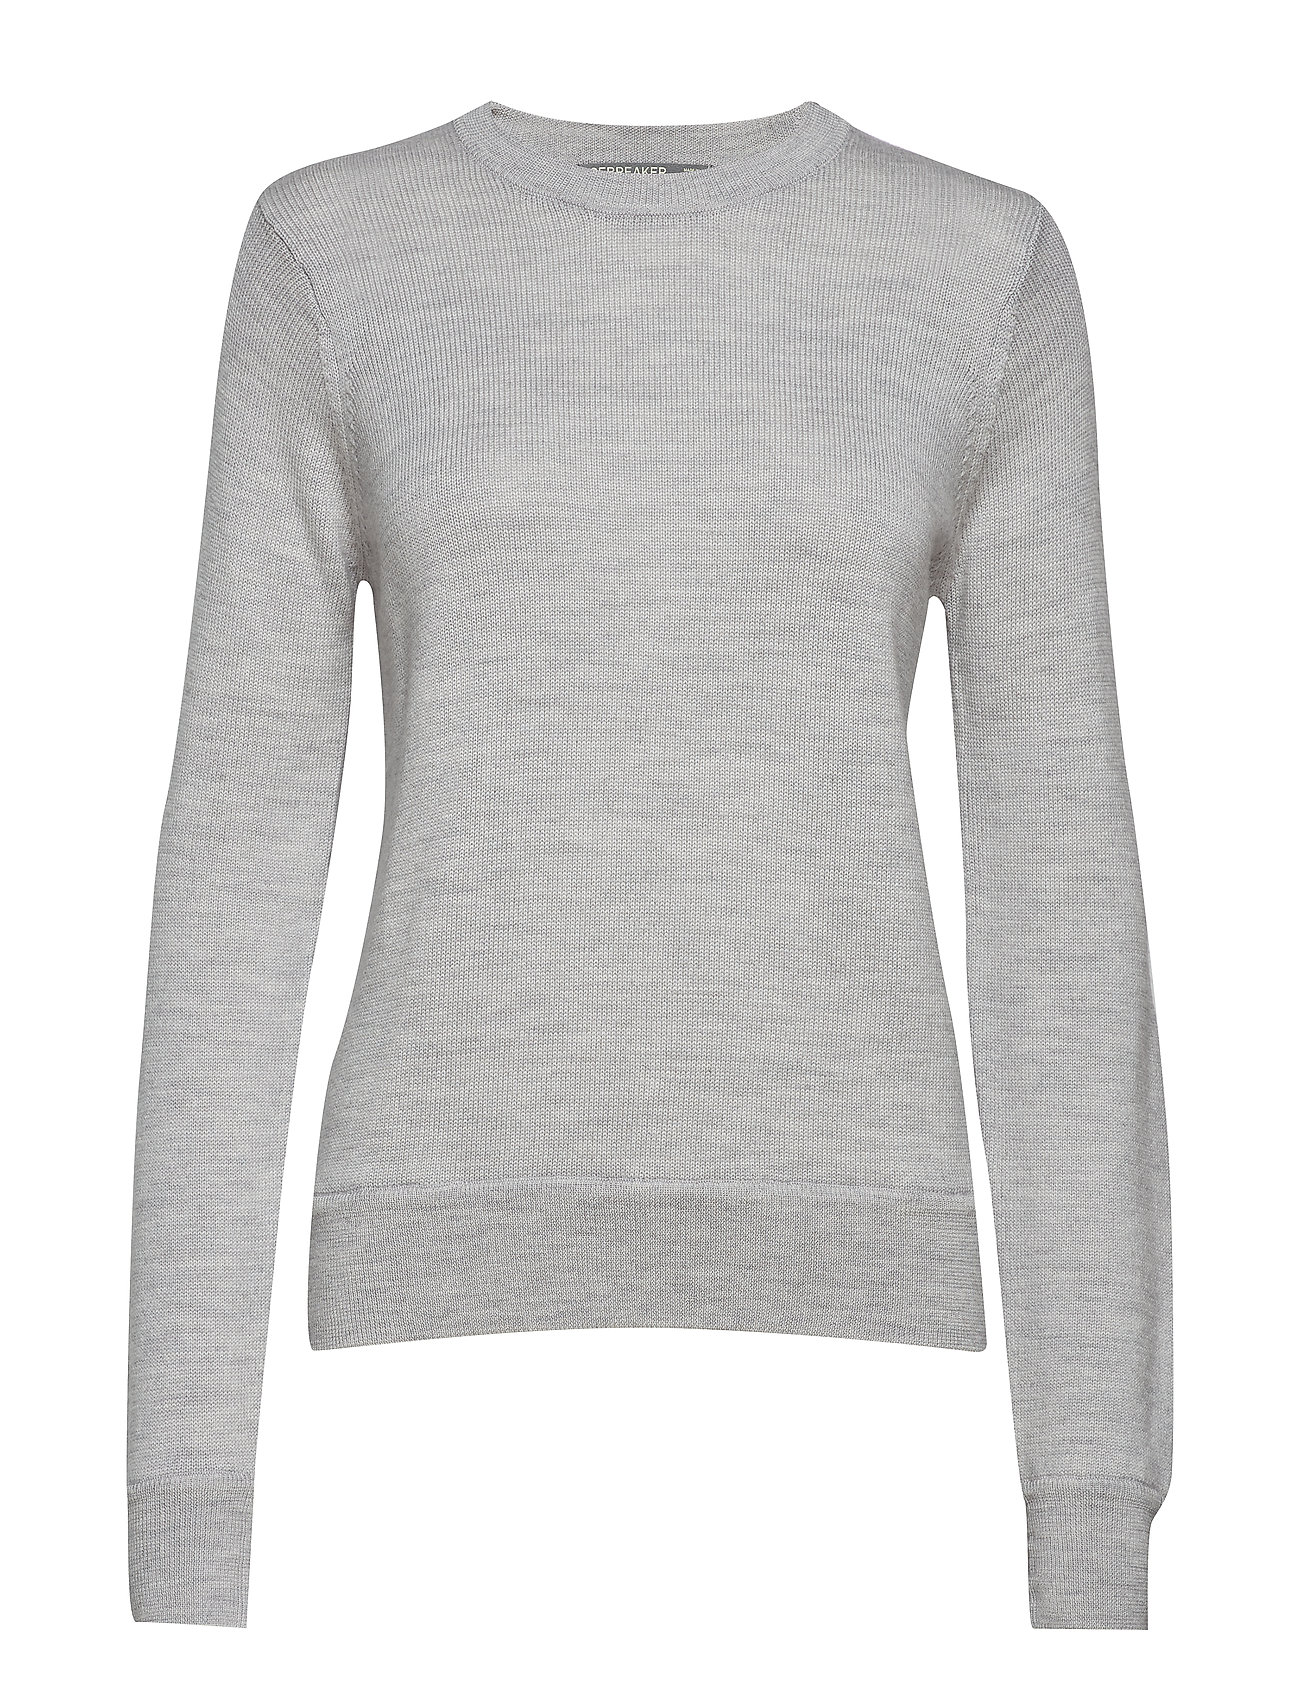 2bad579be5a Wmns Muster Crewe Sweater